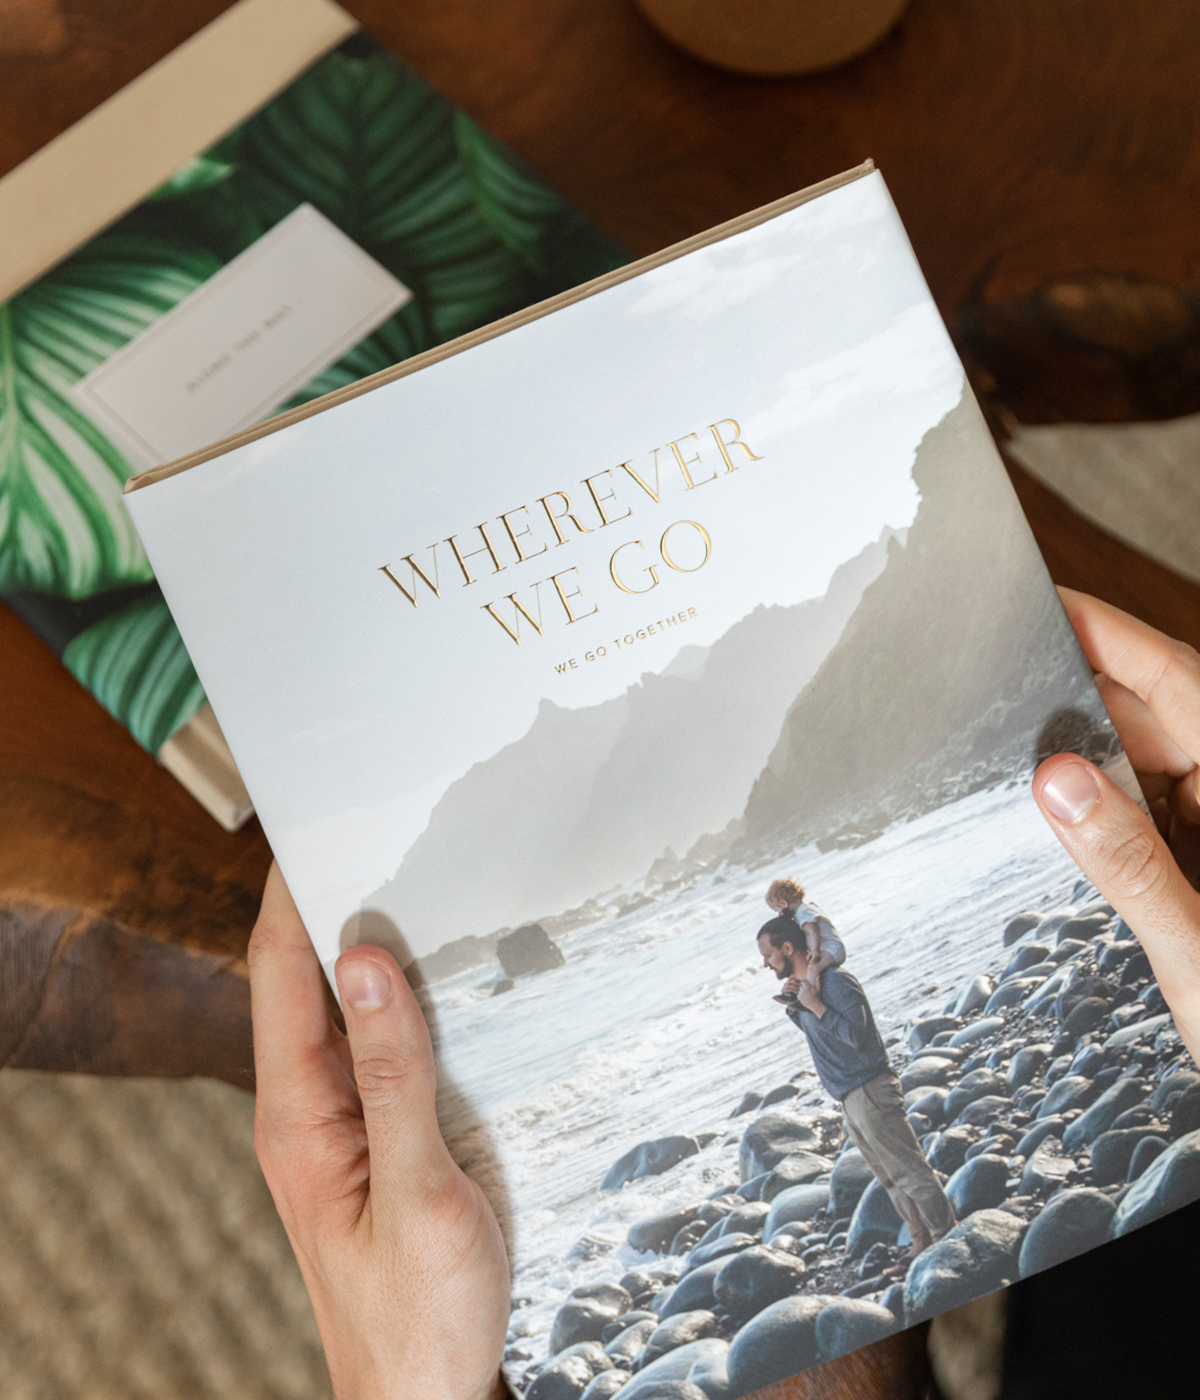 Hardcover Photo Book with full dust jacket featuring photo of dad and baby on beach and digital foil title